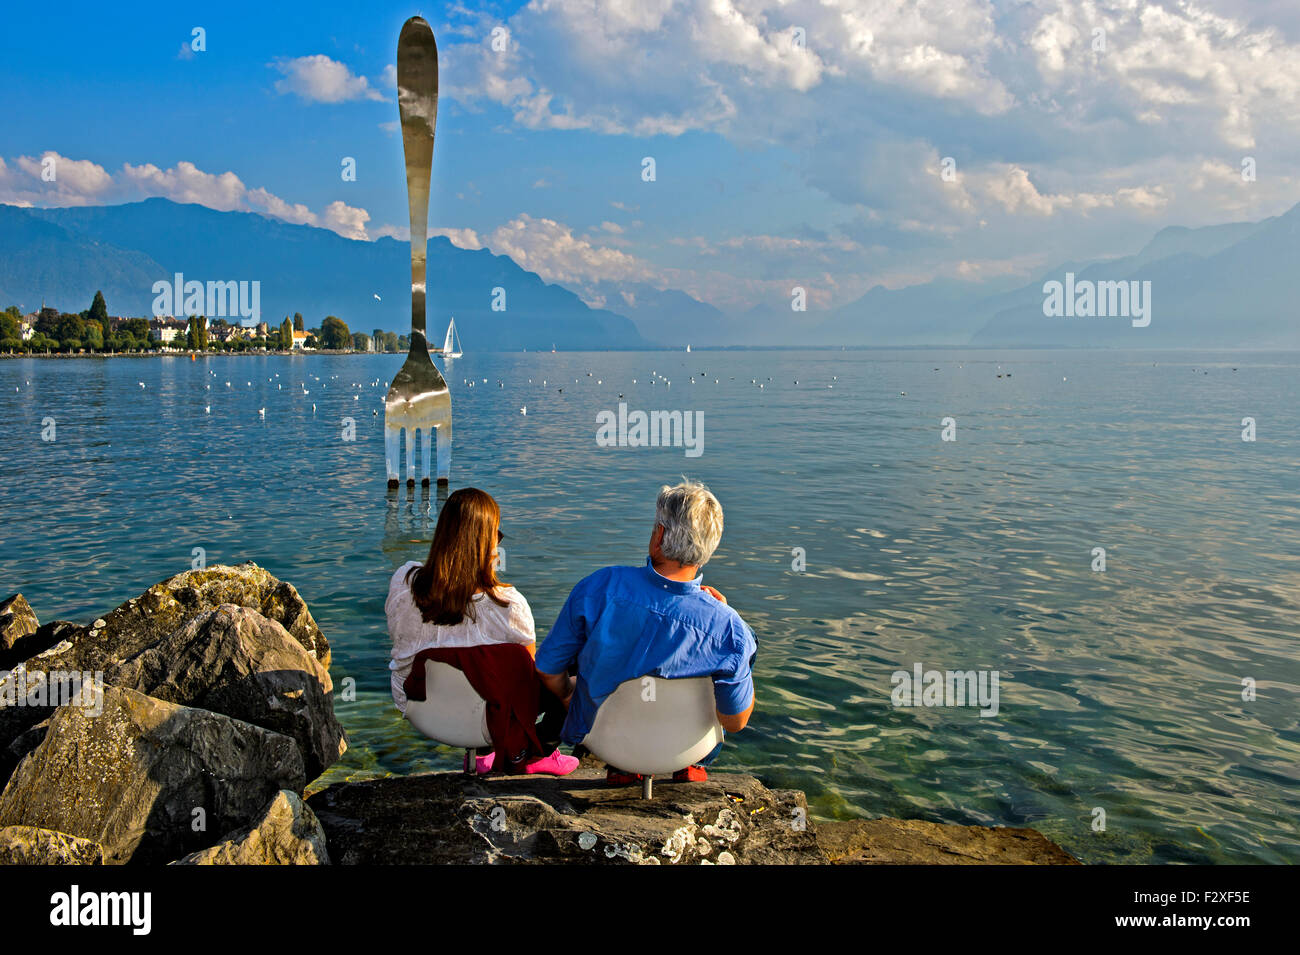 Visitors at the sculpture, The Fork, La Fourchette, by Jean-Pierre Zaugg, in Lake Geneva, Museum of Nutrition Alimentarium - Stock Image